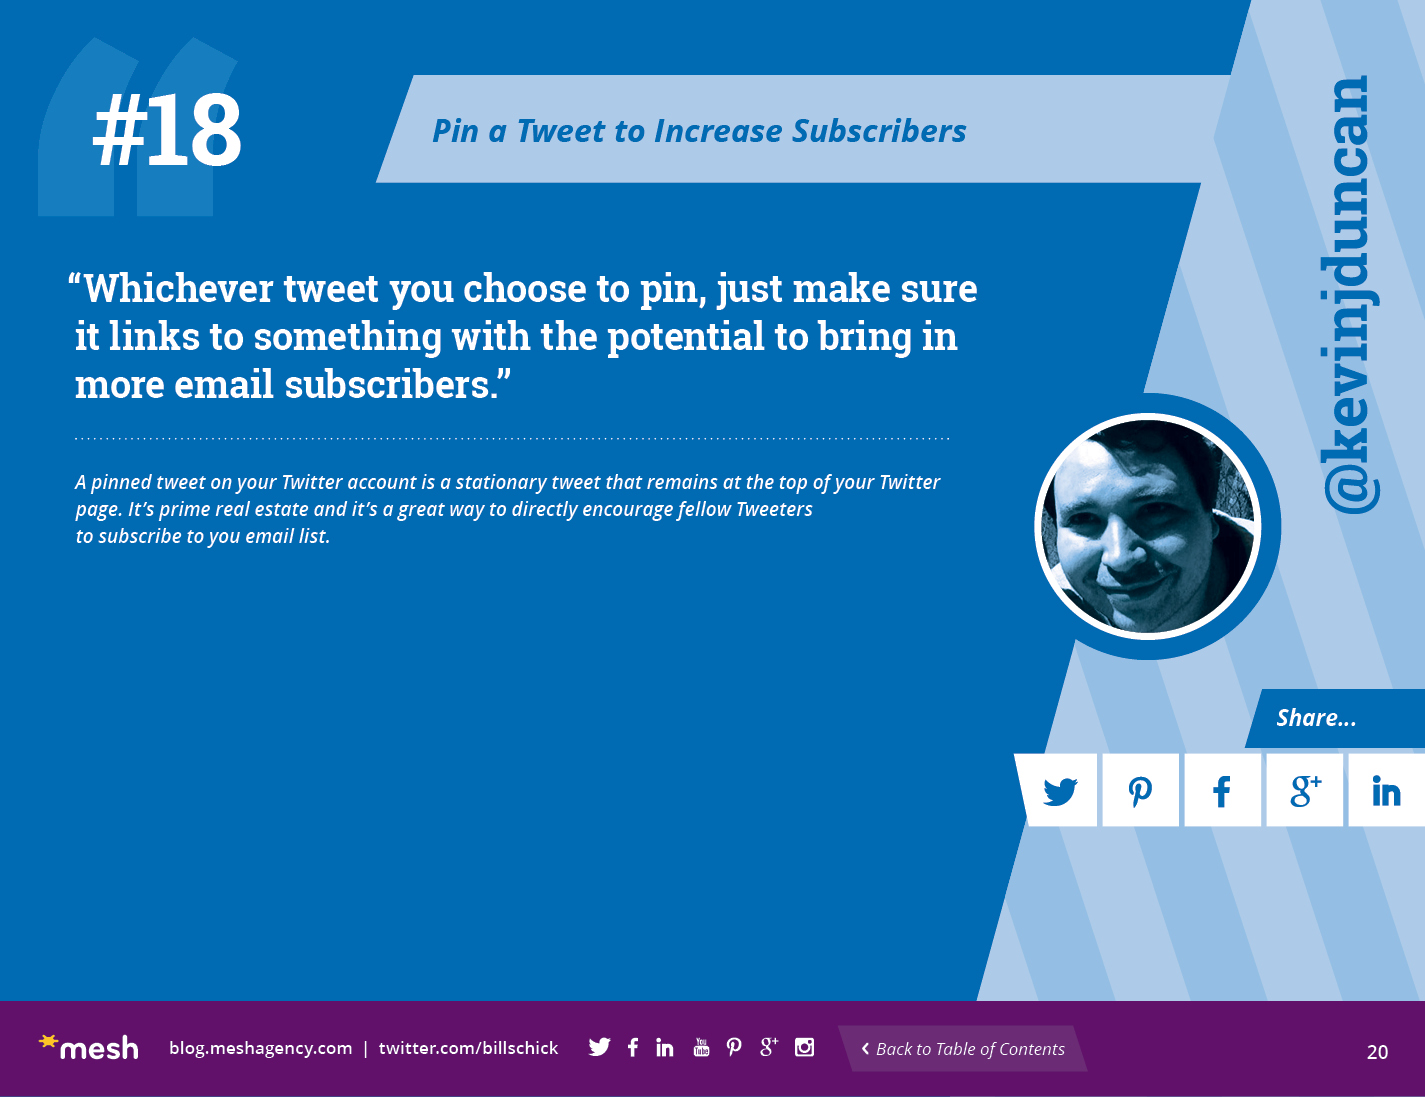 #18: Pin a Tweet to Increase Subscribers via @meshagency #365EmailTips